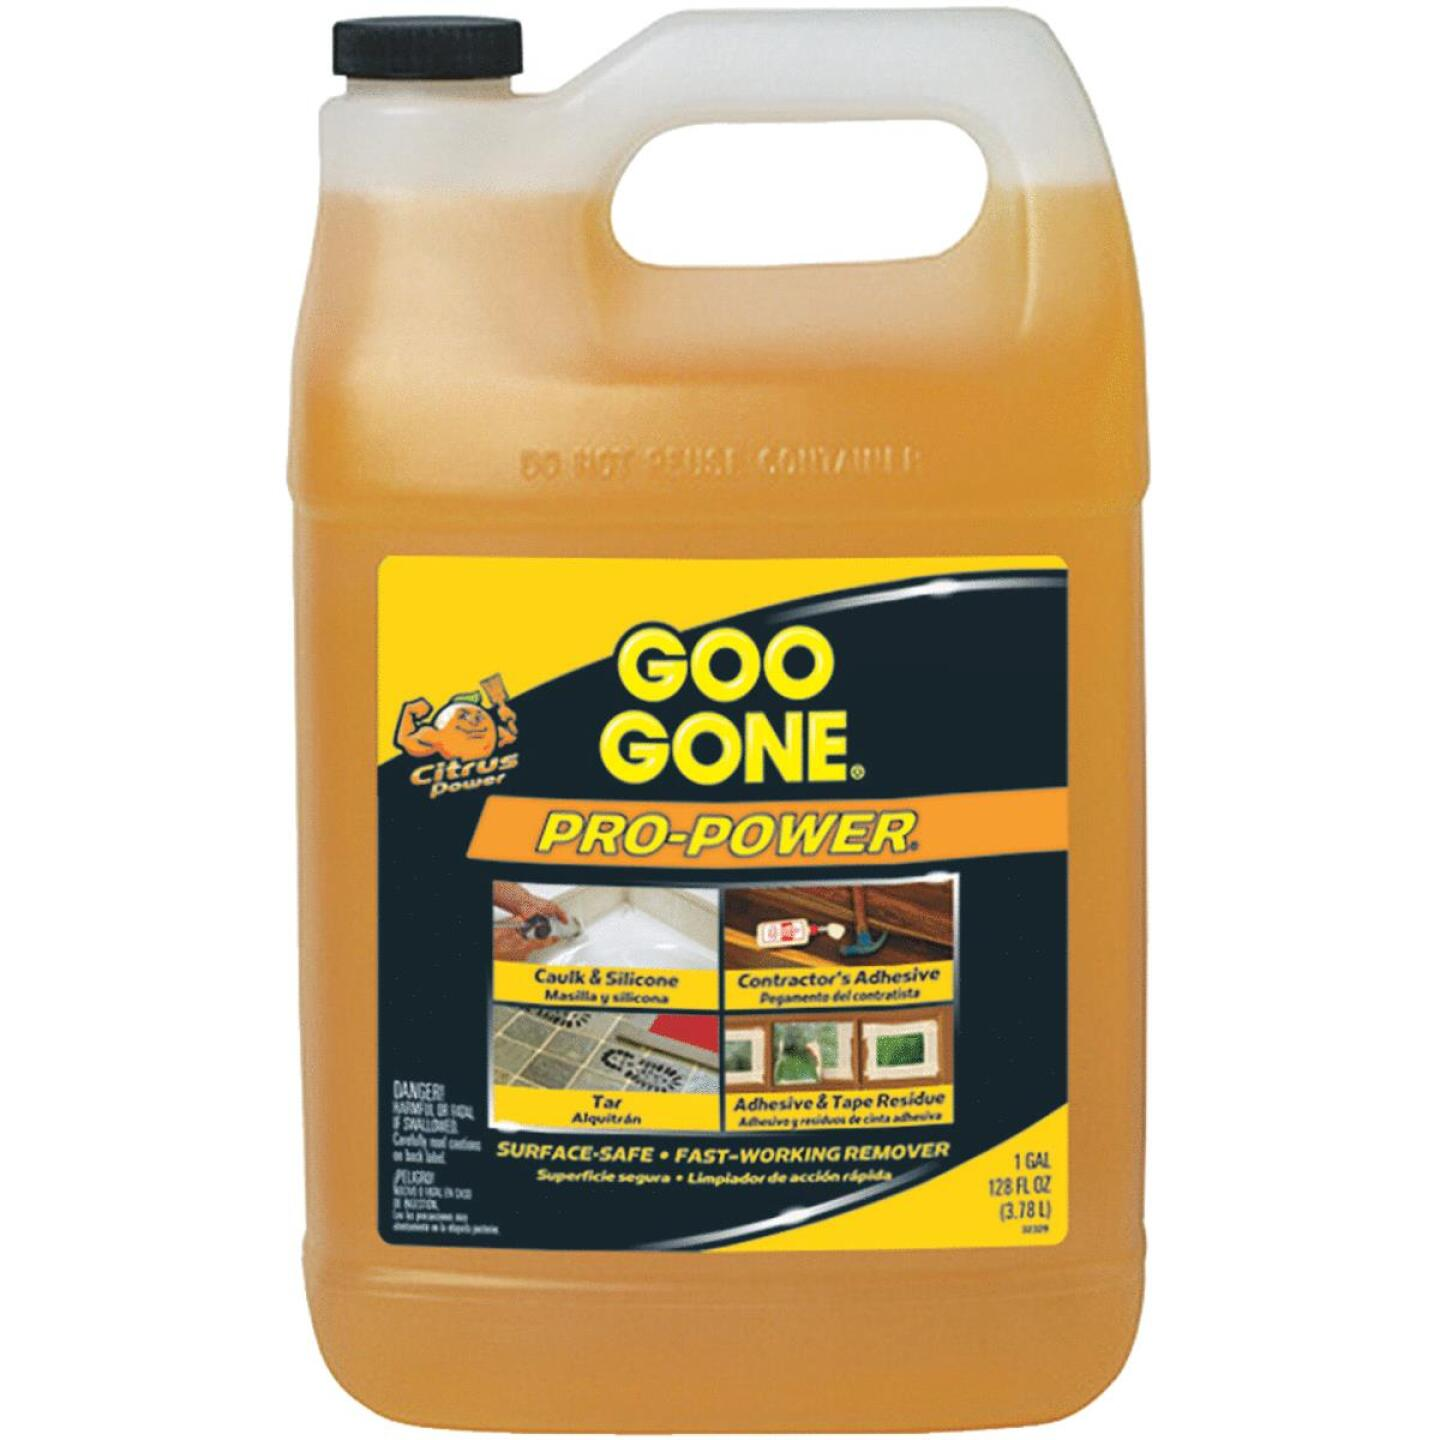 Goo Gone 1 Gal. Pro-Power Adhesive Remover Image 323